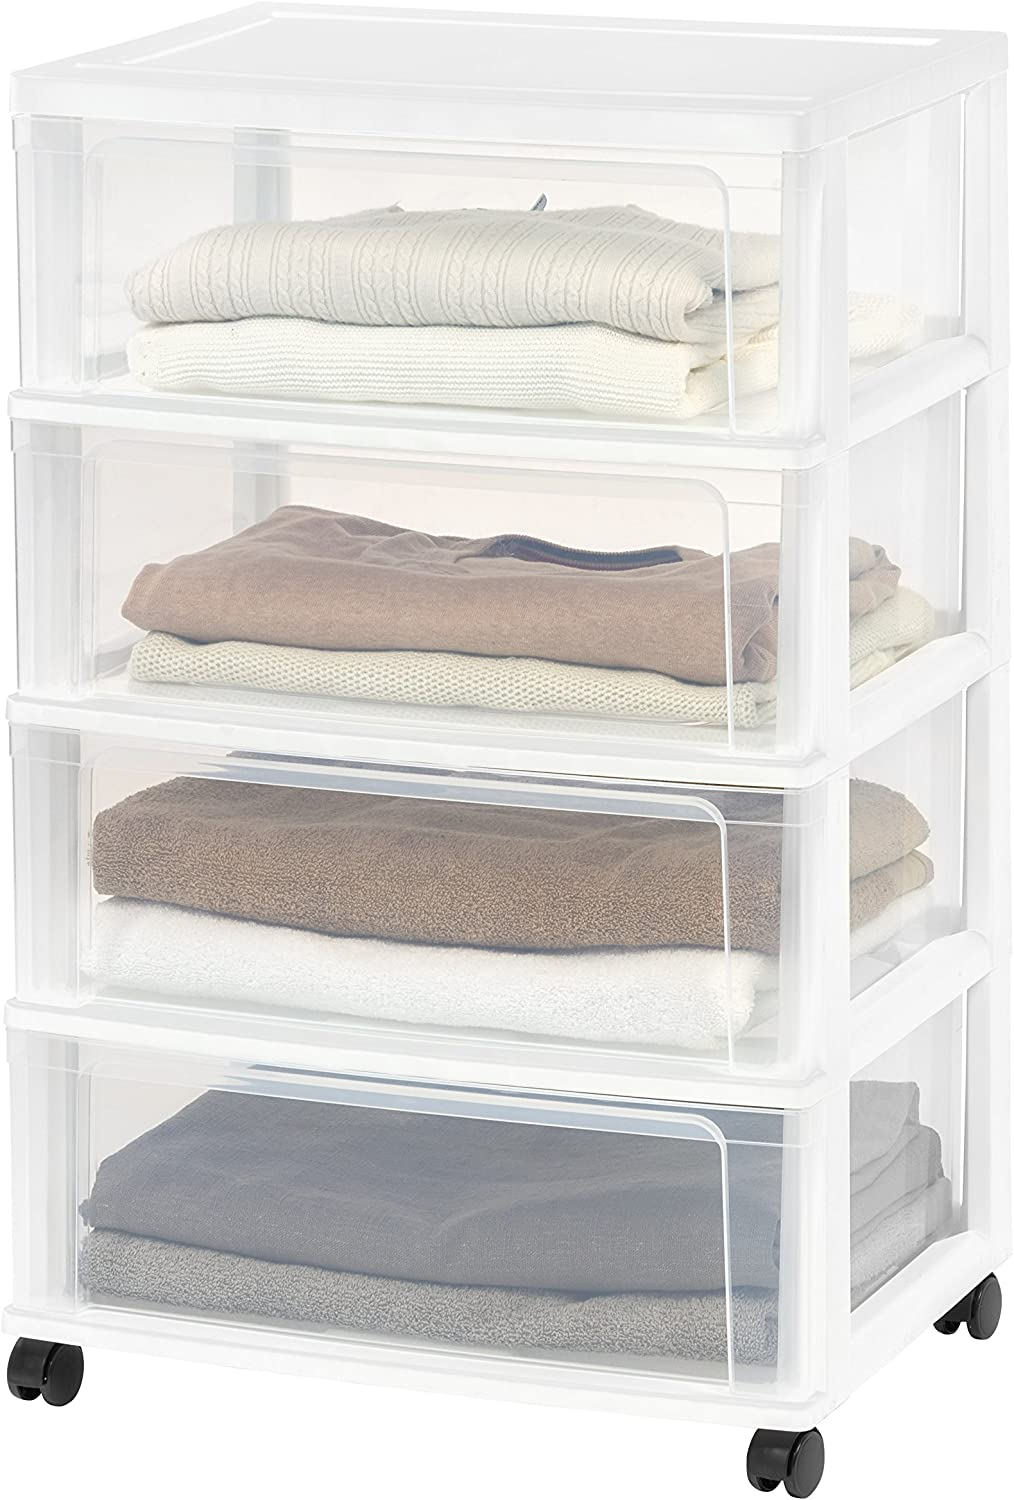 IRIS 4 Drawer Wide Chest, White